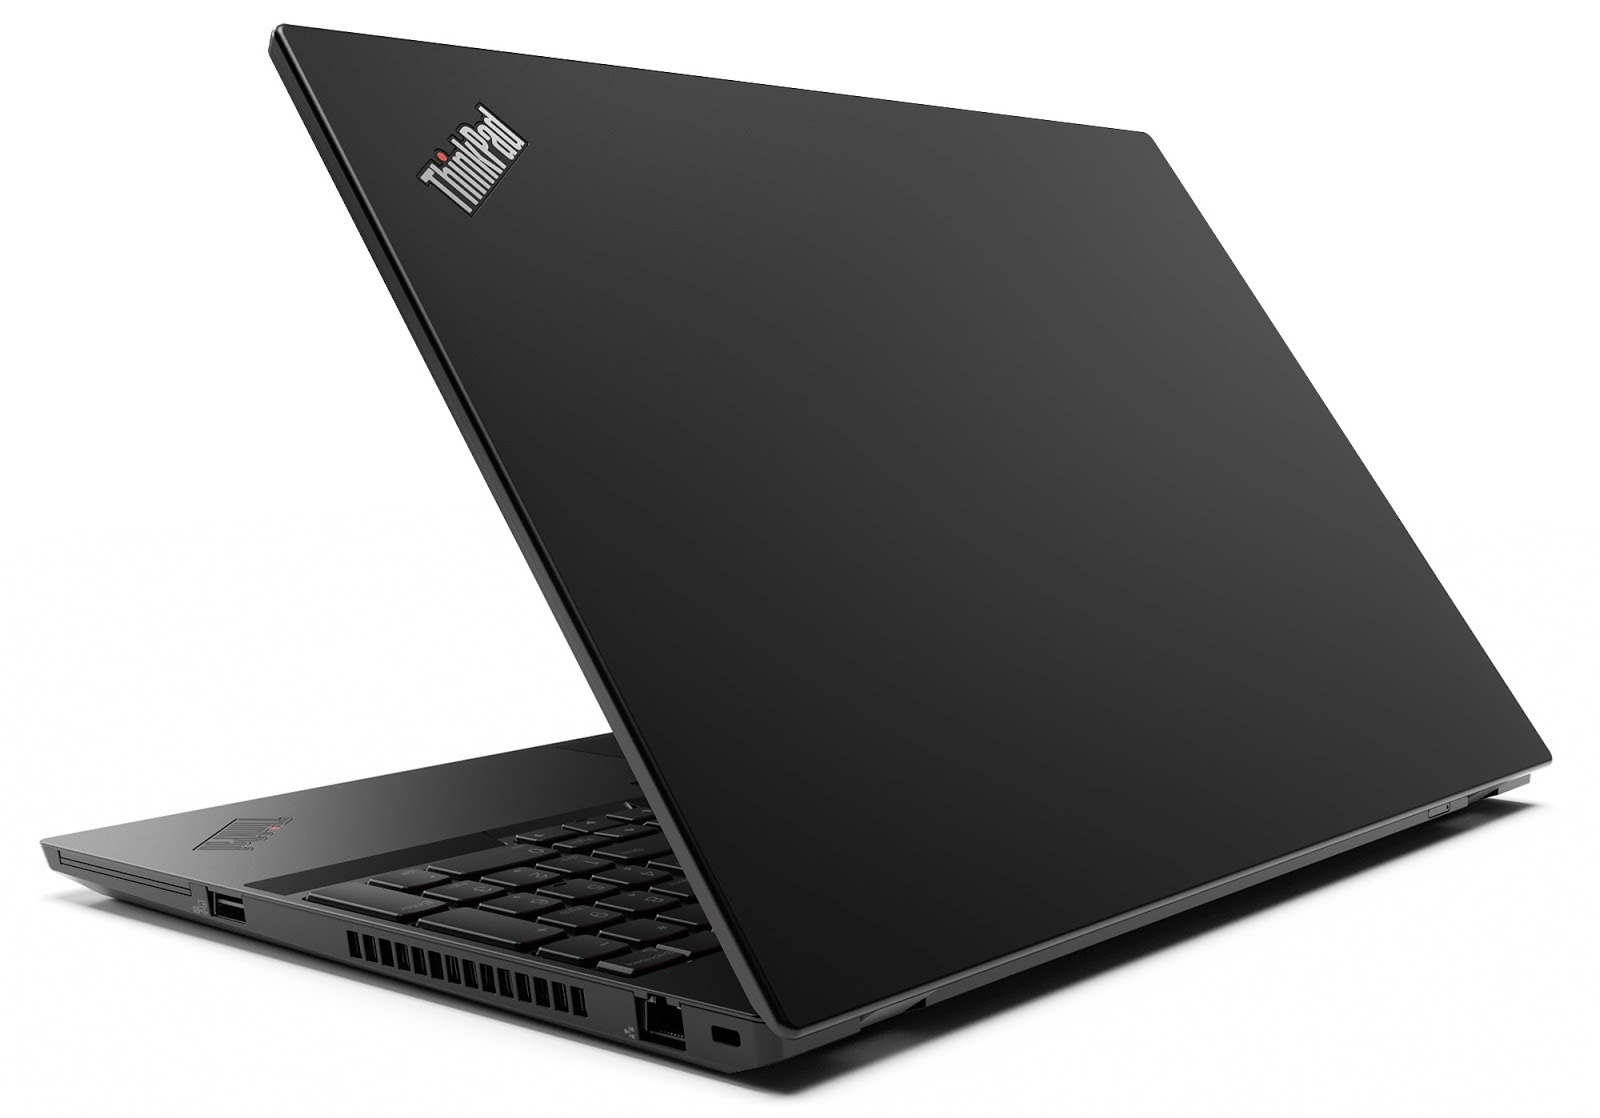 Фото 2. Ноутбук Lenovo ThinkPad T15 Gen 1 Black (20S60022RT)